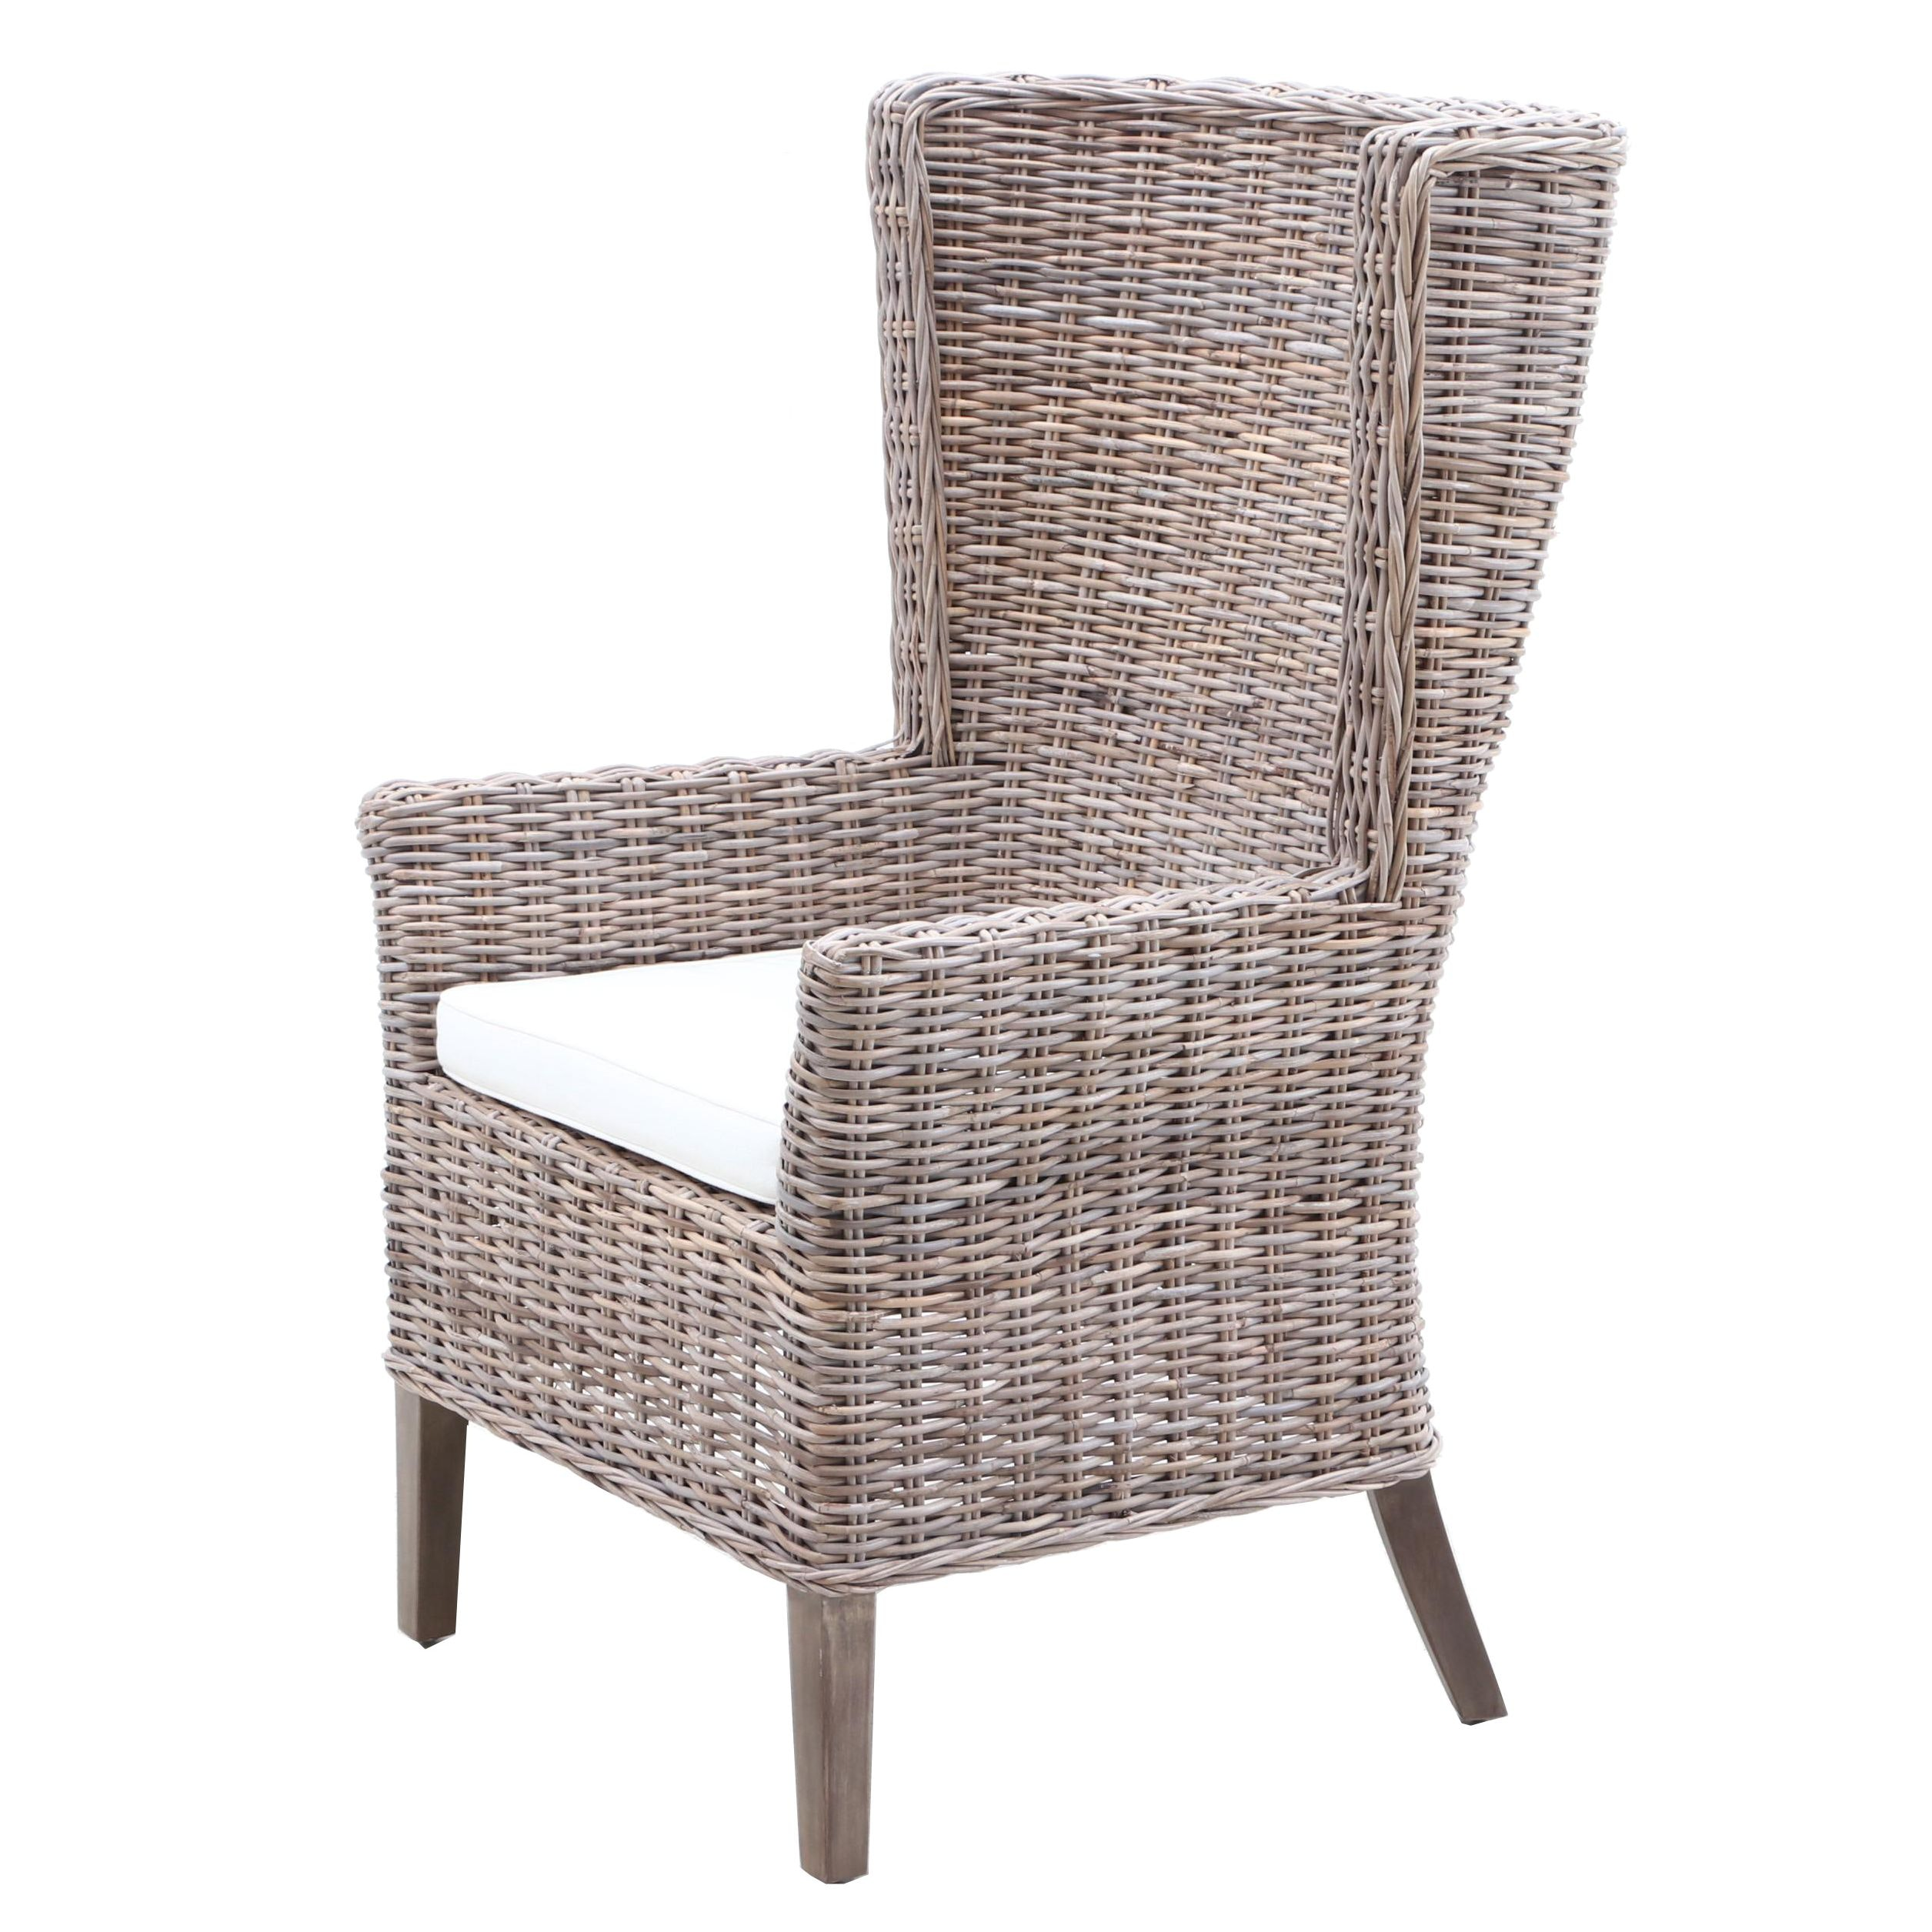 Woven Wicker Wingback Chair, Contemporary